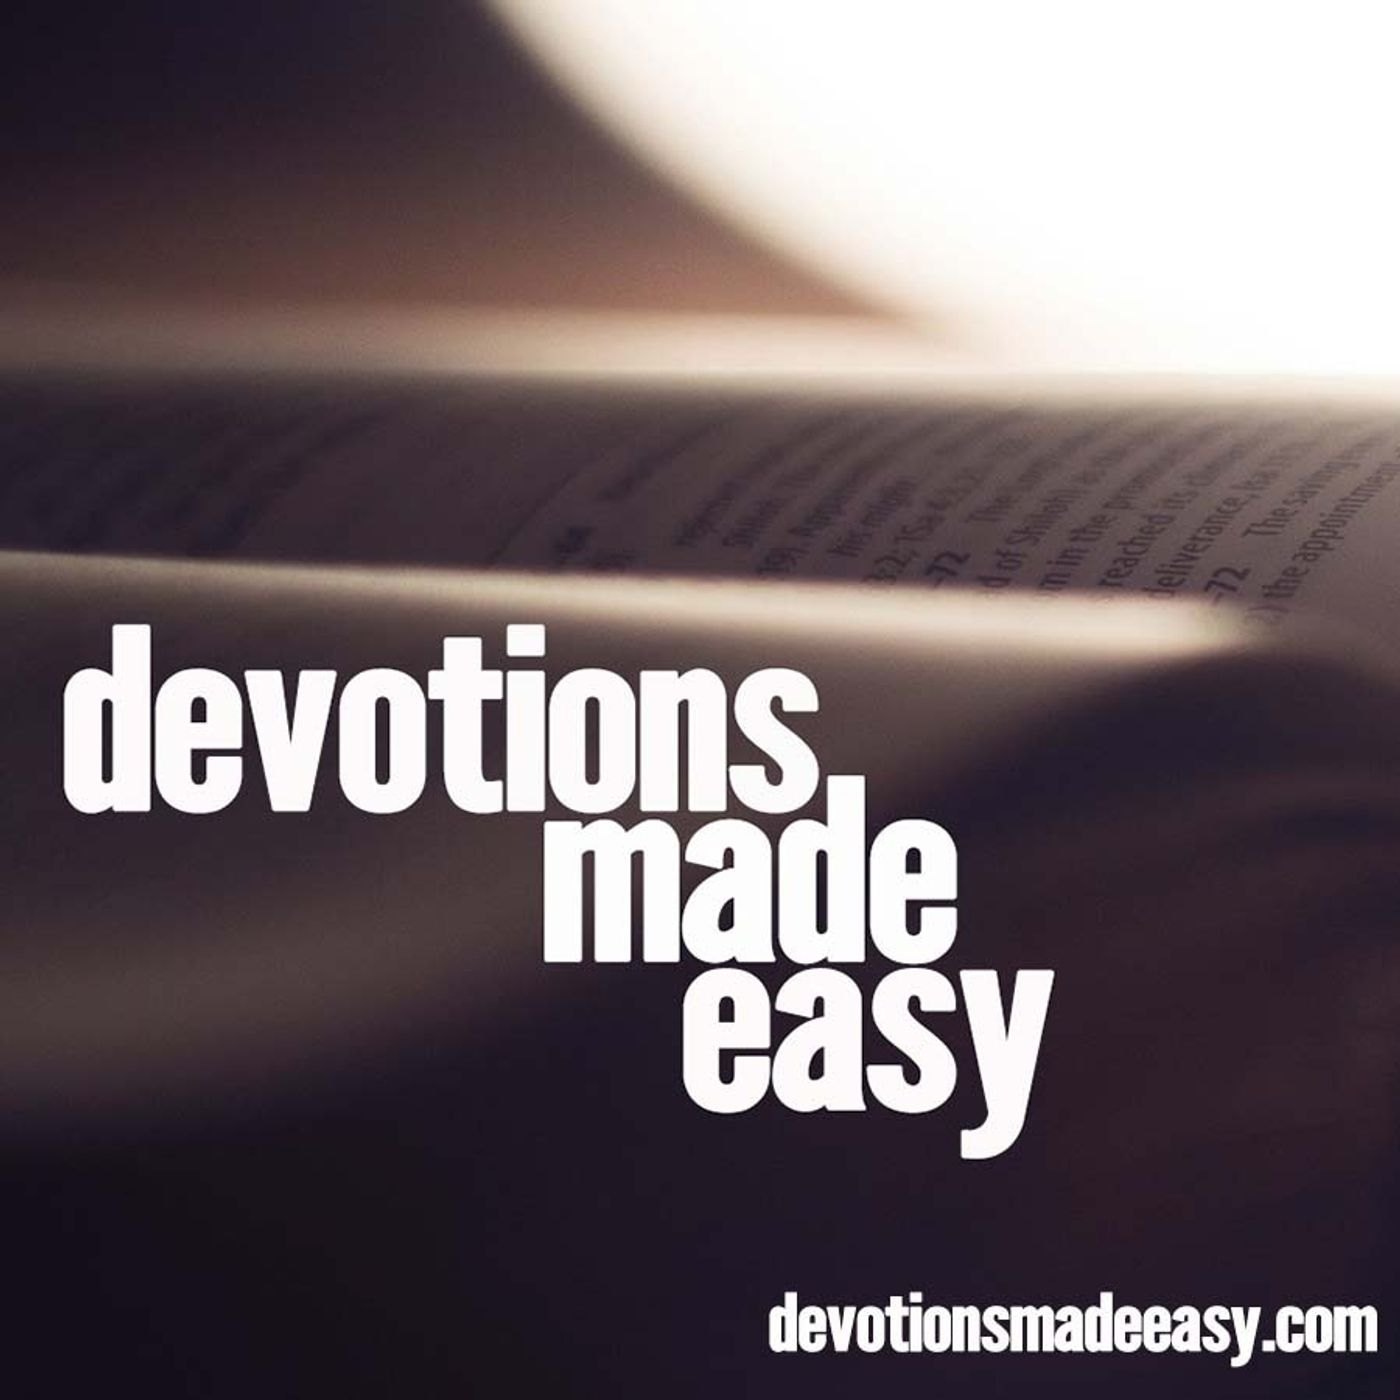 devotions made easy